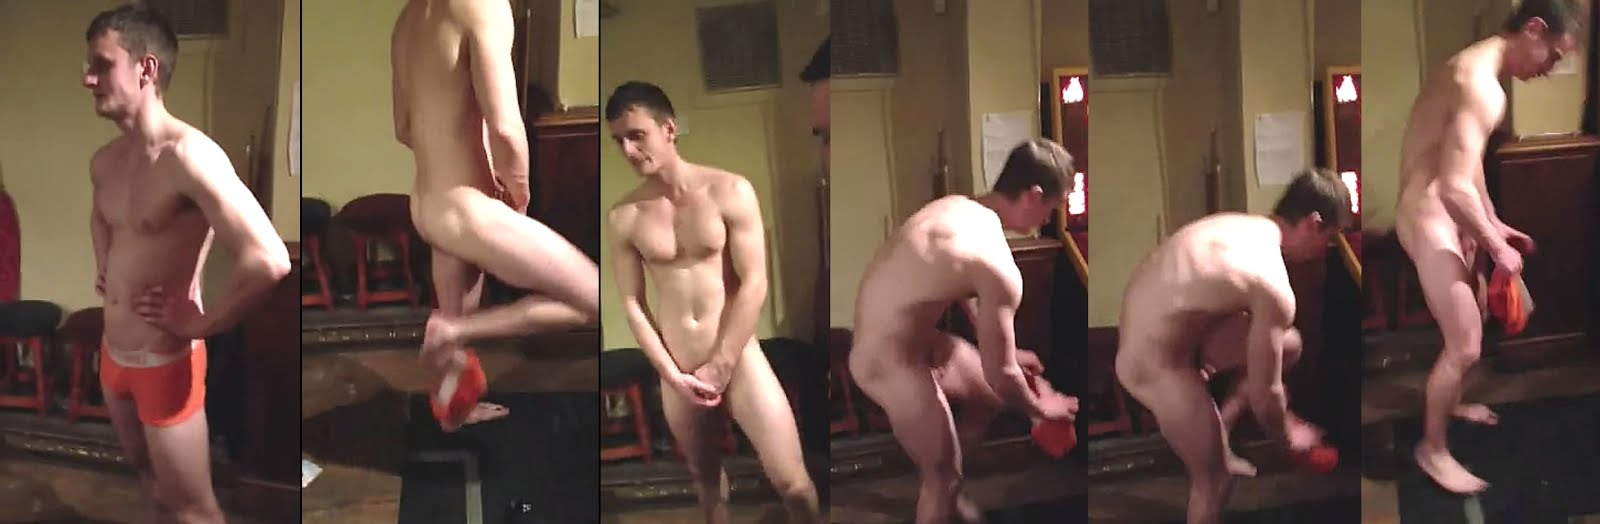 boy stripping